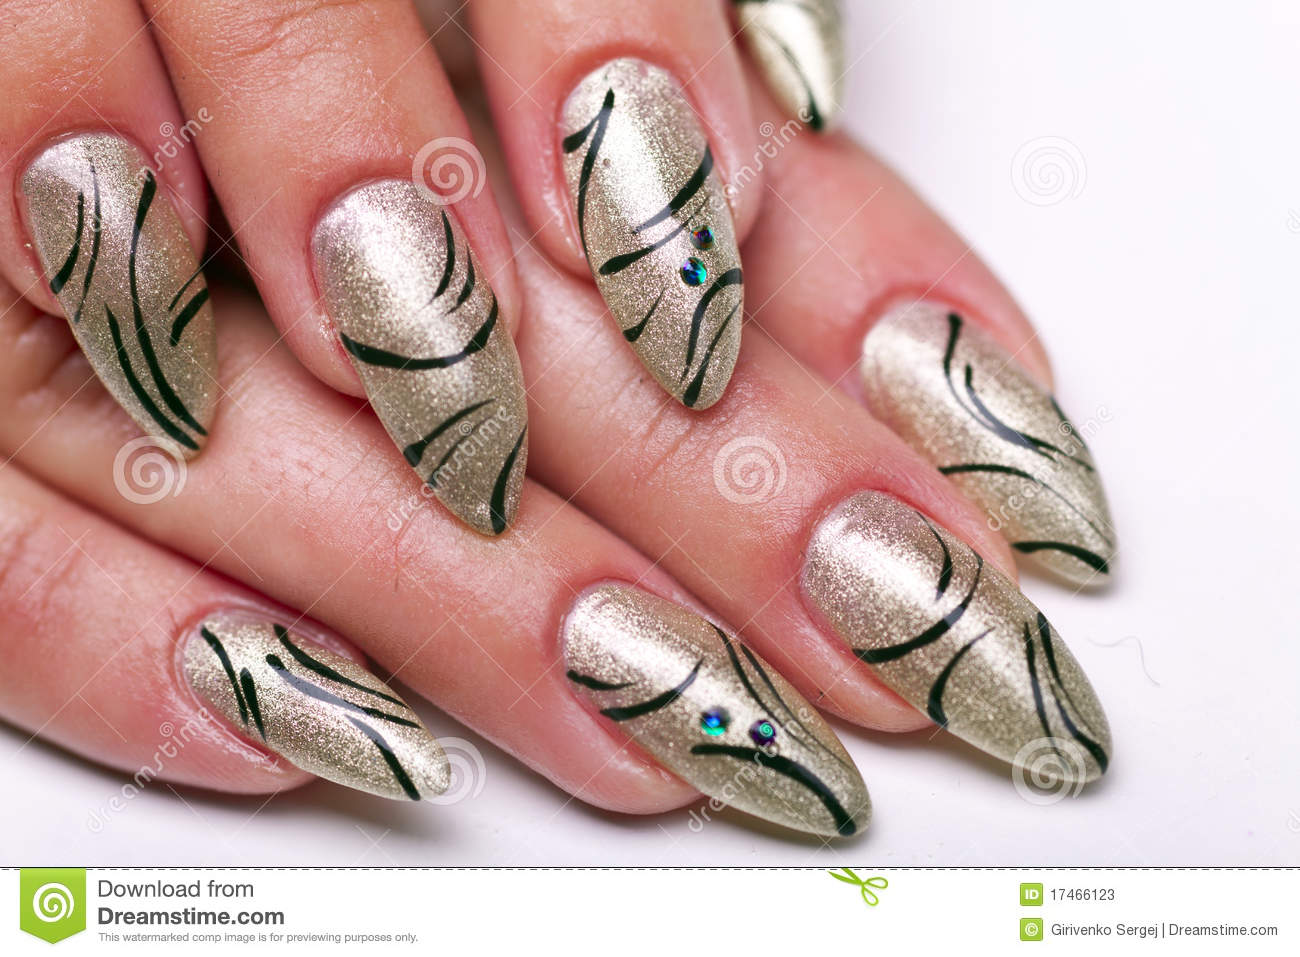 Nails manicure stock image. Image of design, pattern - 17466123